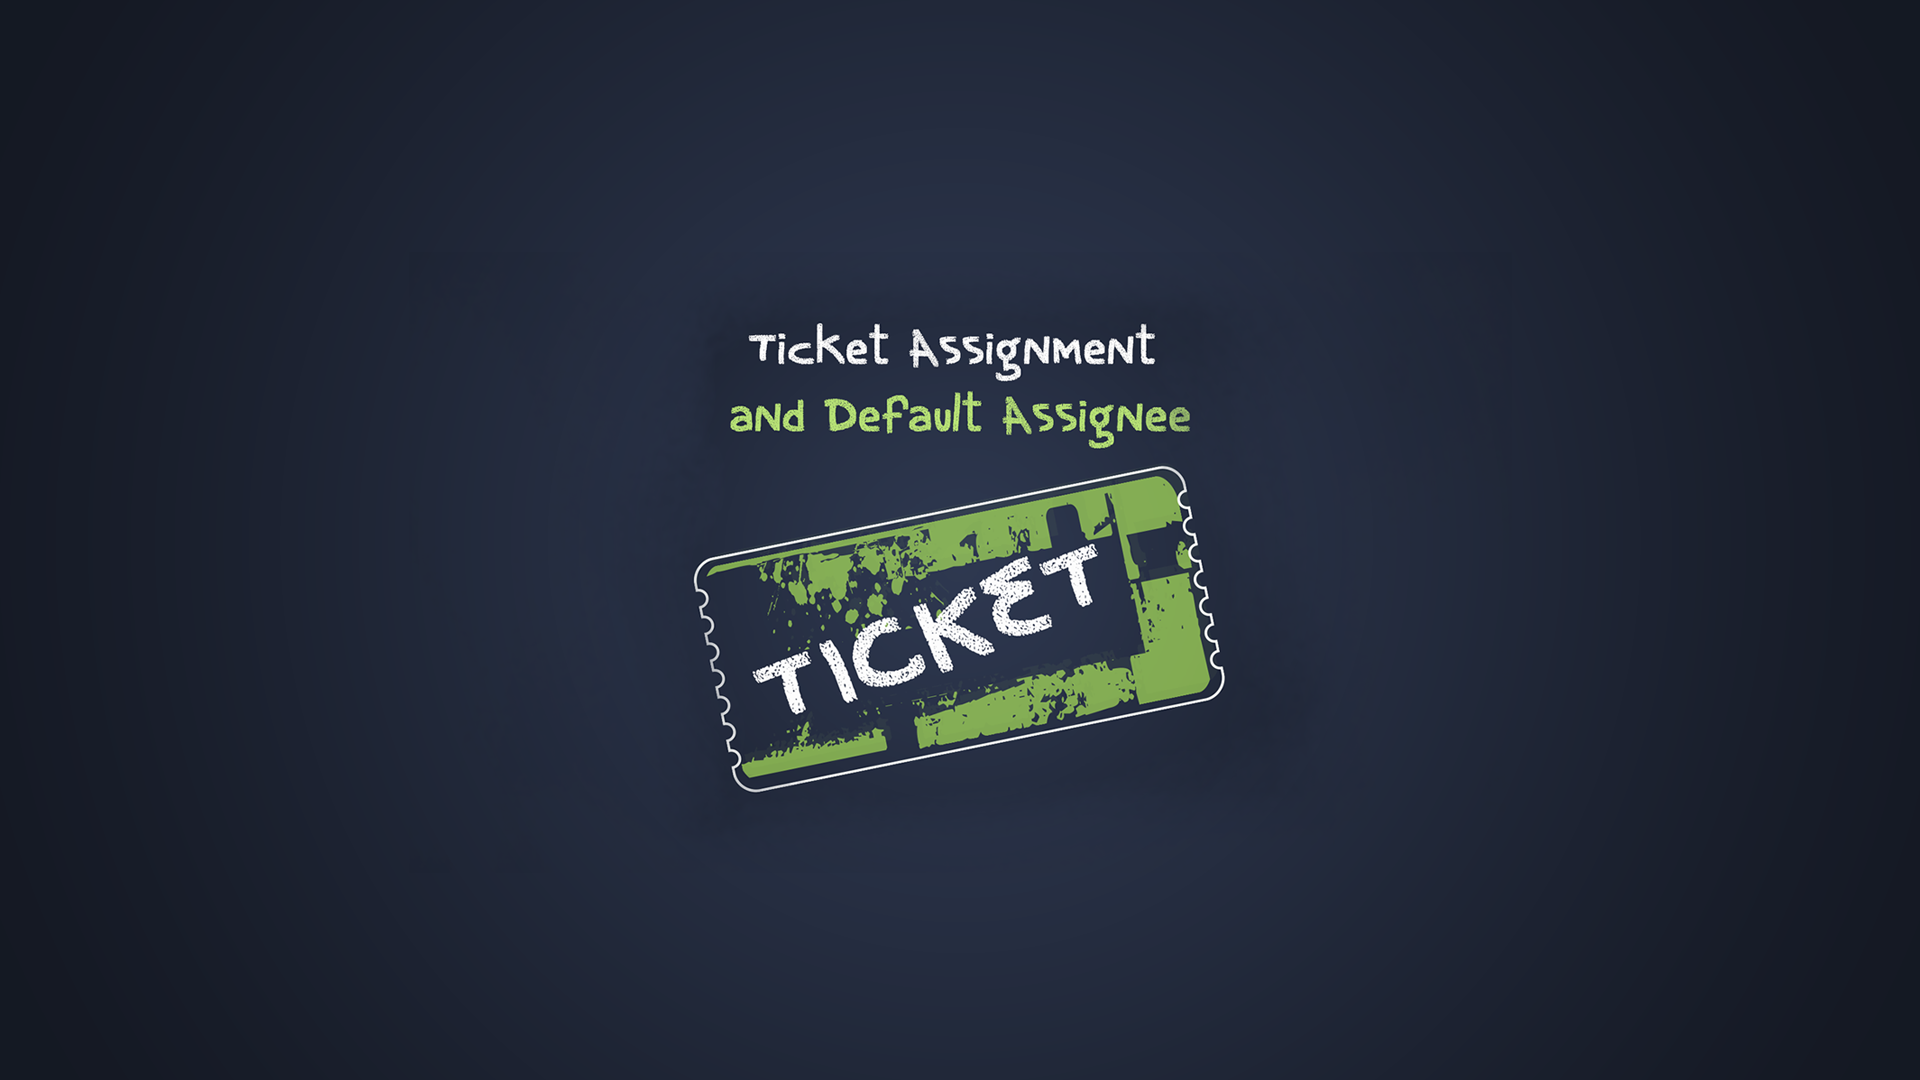 Ticket Assignment and Default Assignee